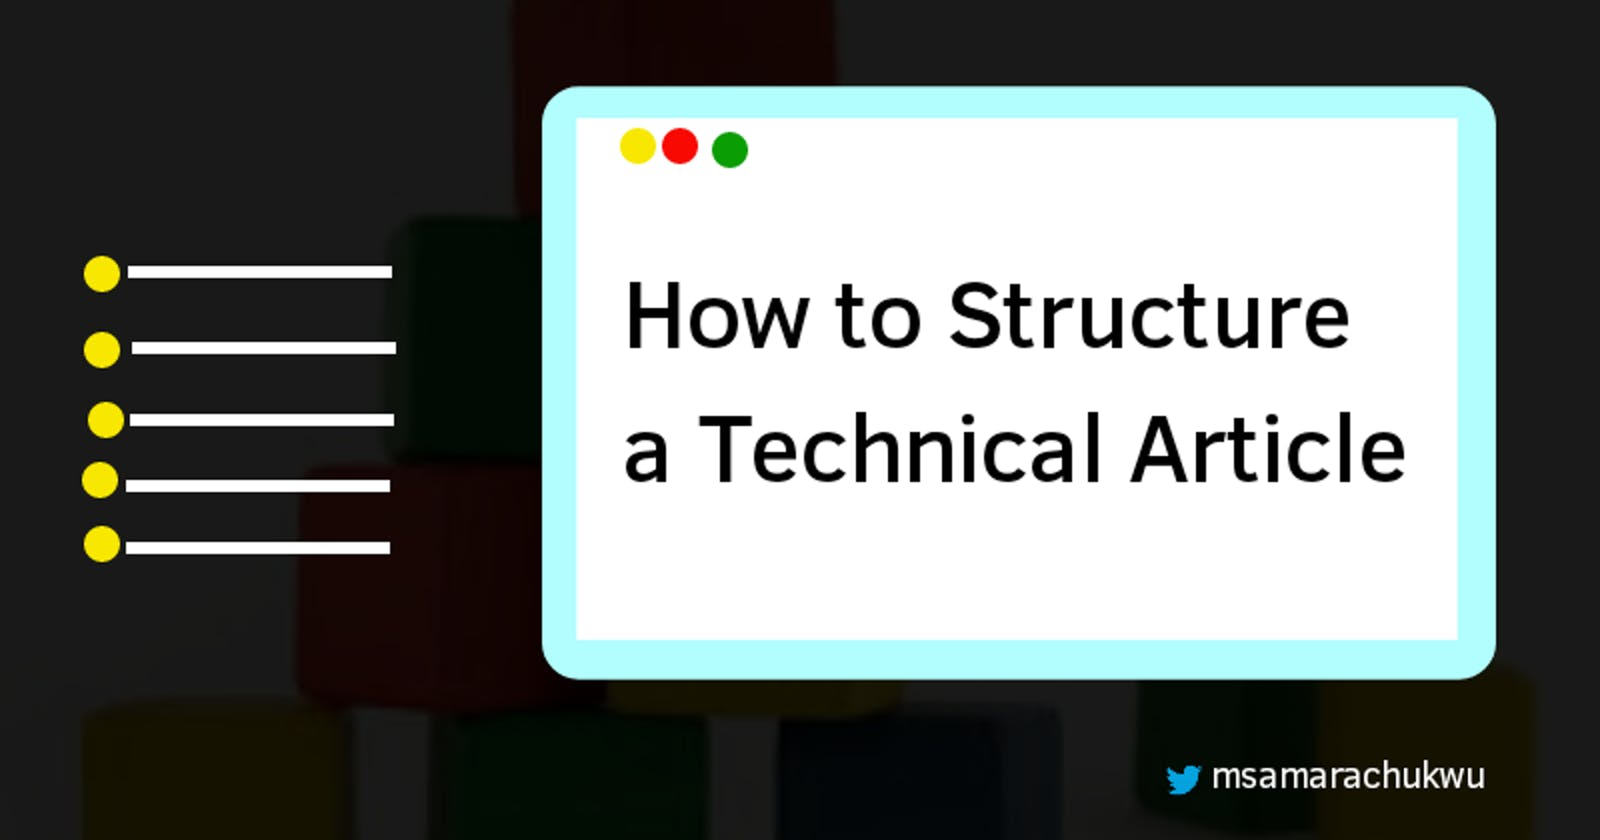 How to Structure a Technical Article